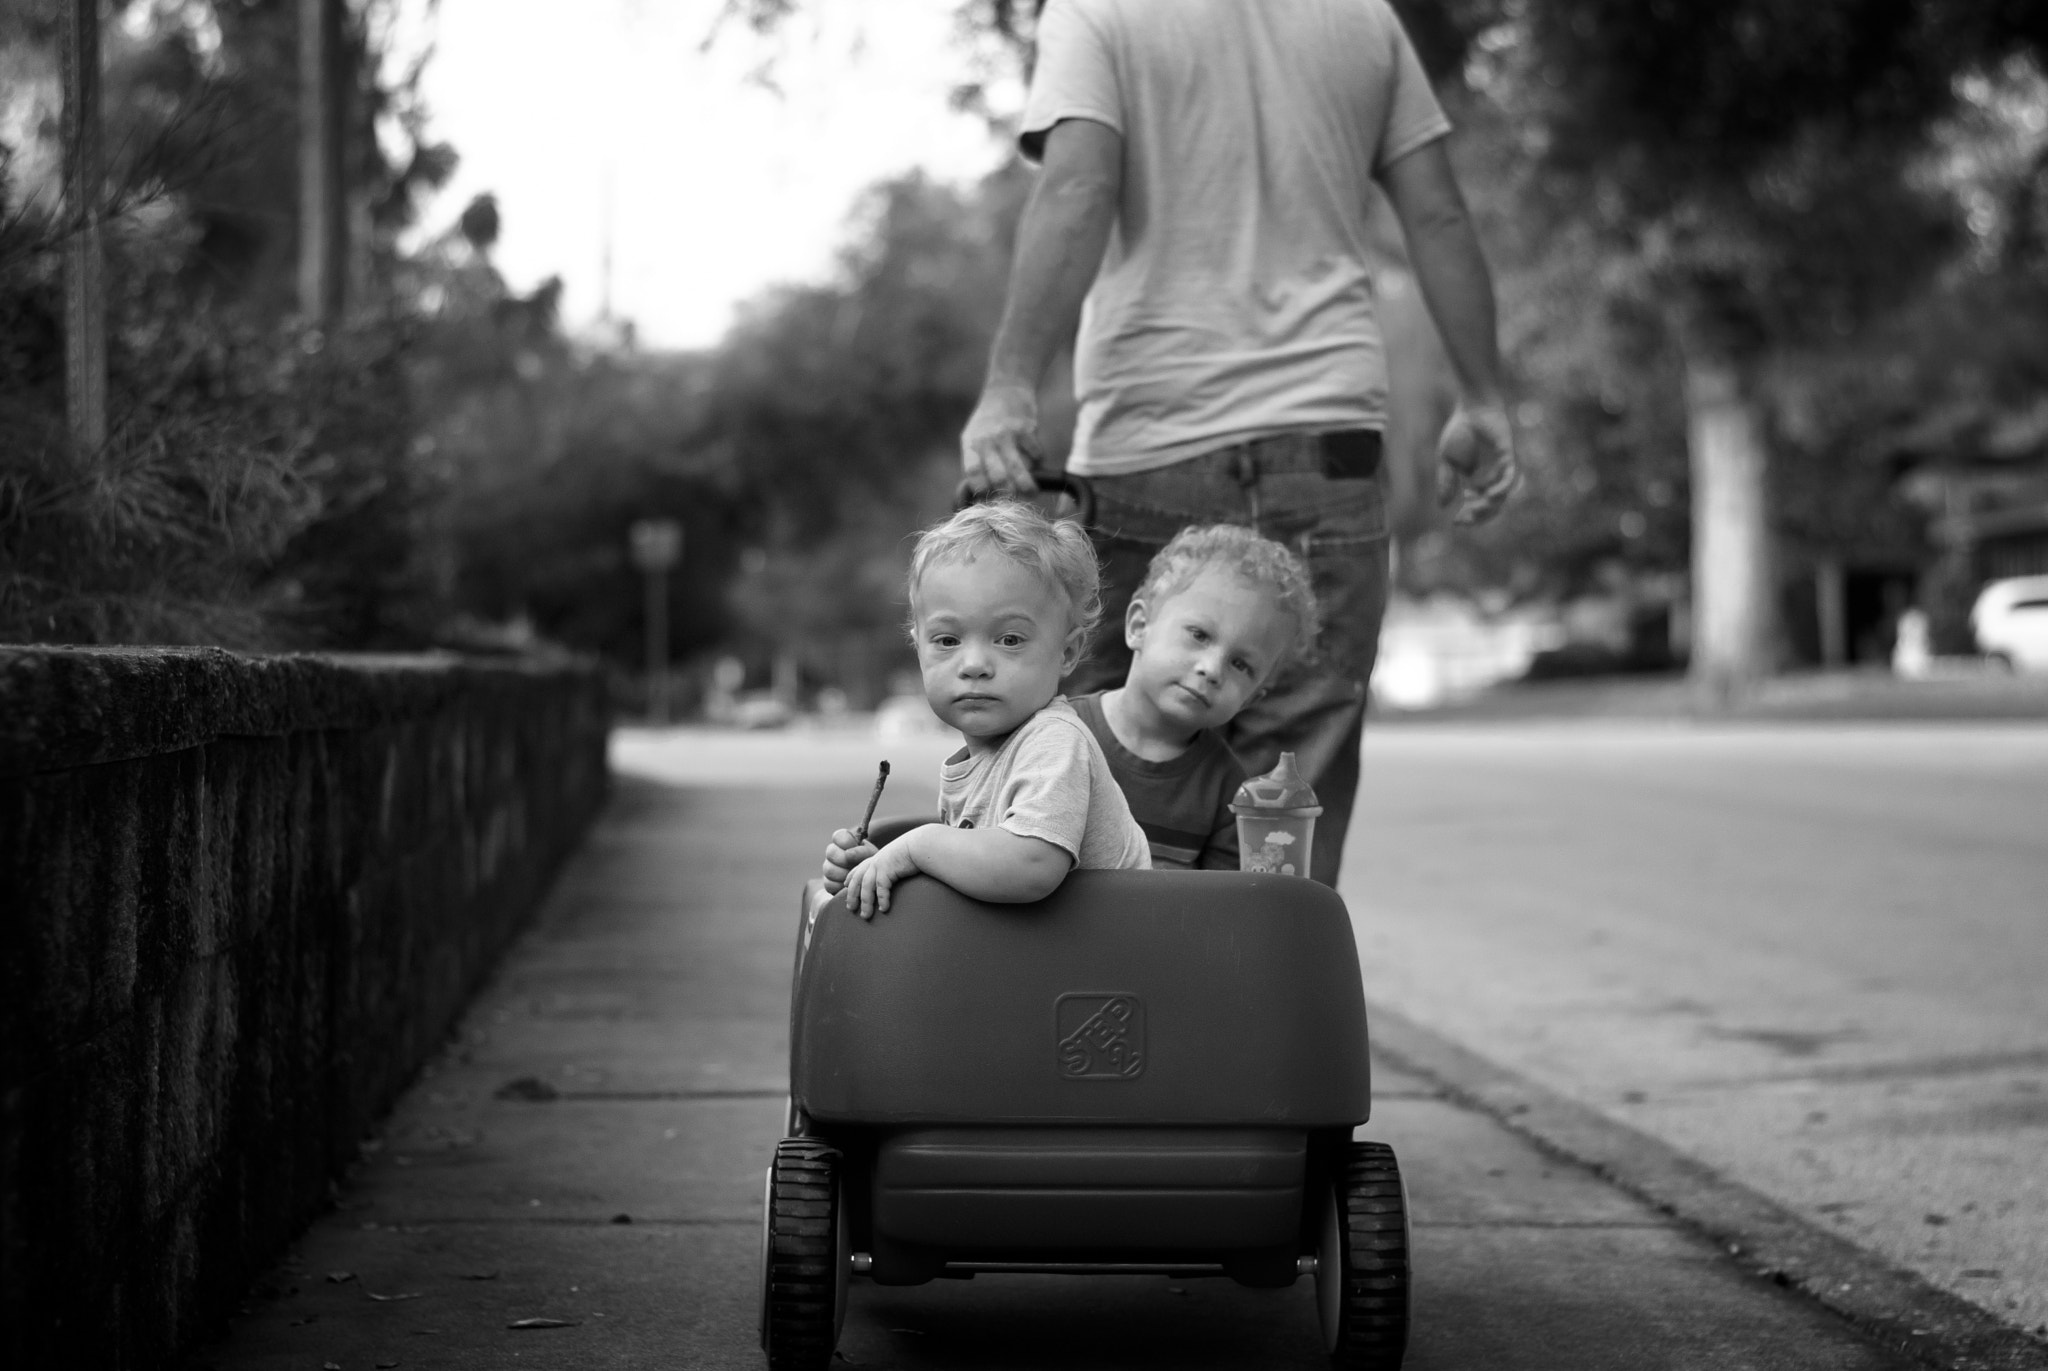 Photograph Wagon Ride by Mark Hammer on 500px